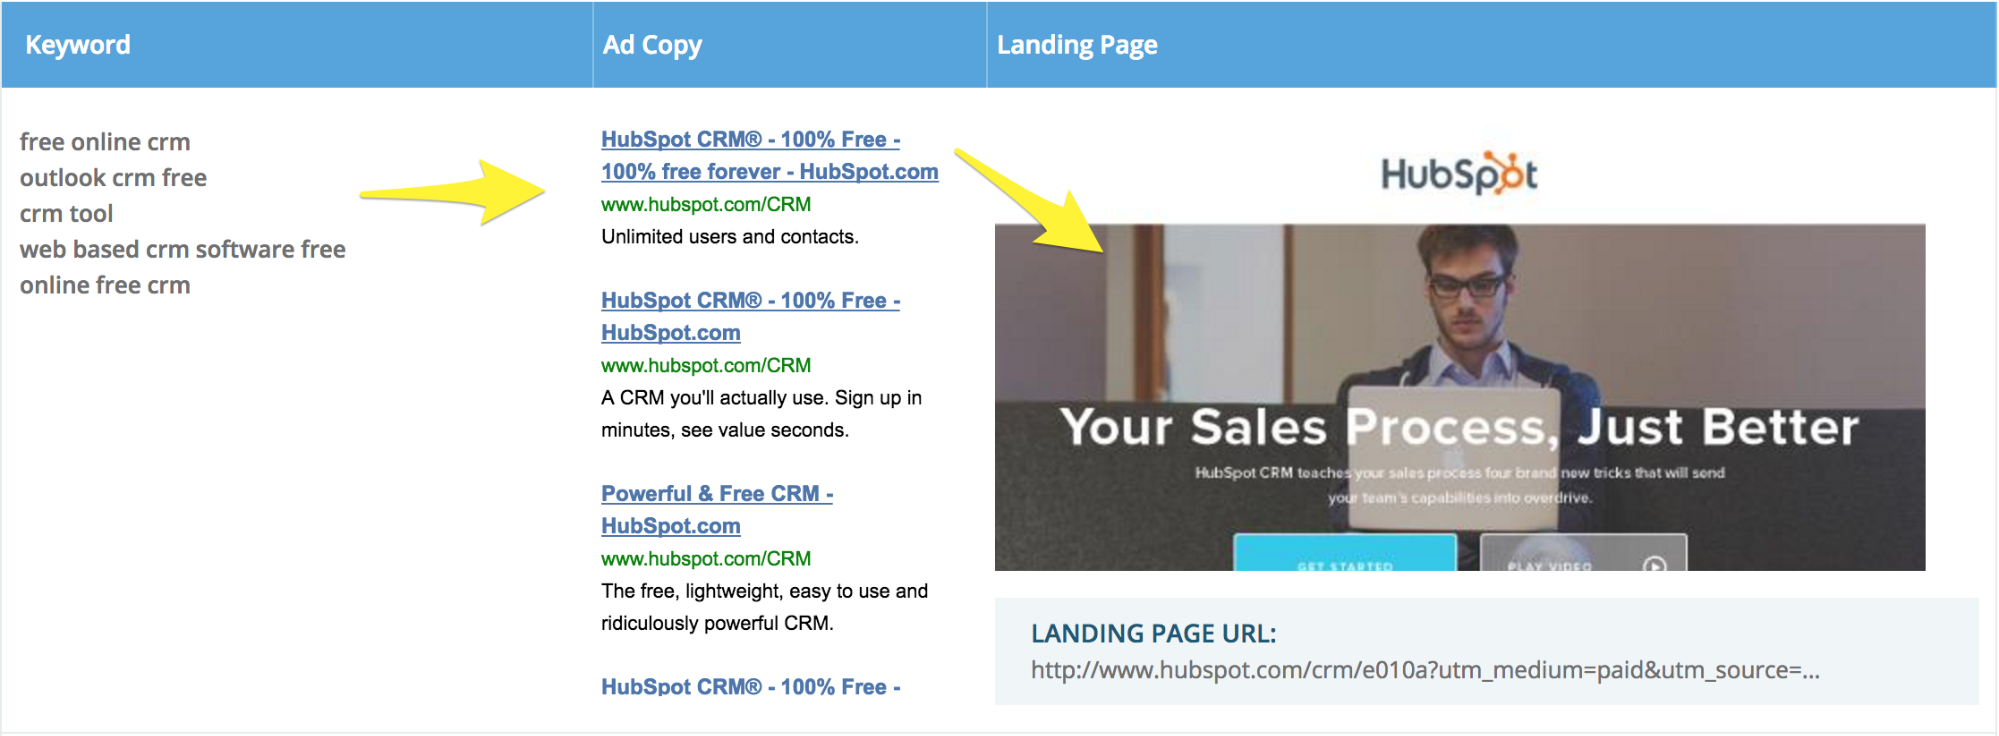 Screenshot showing google keywords and copy for hubspot